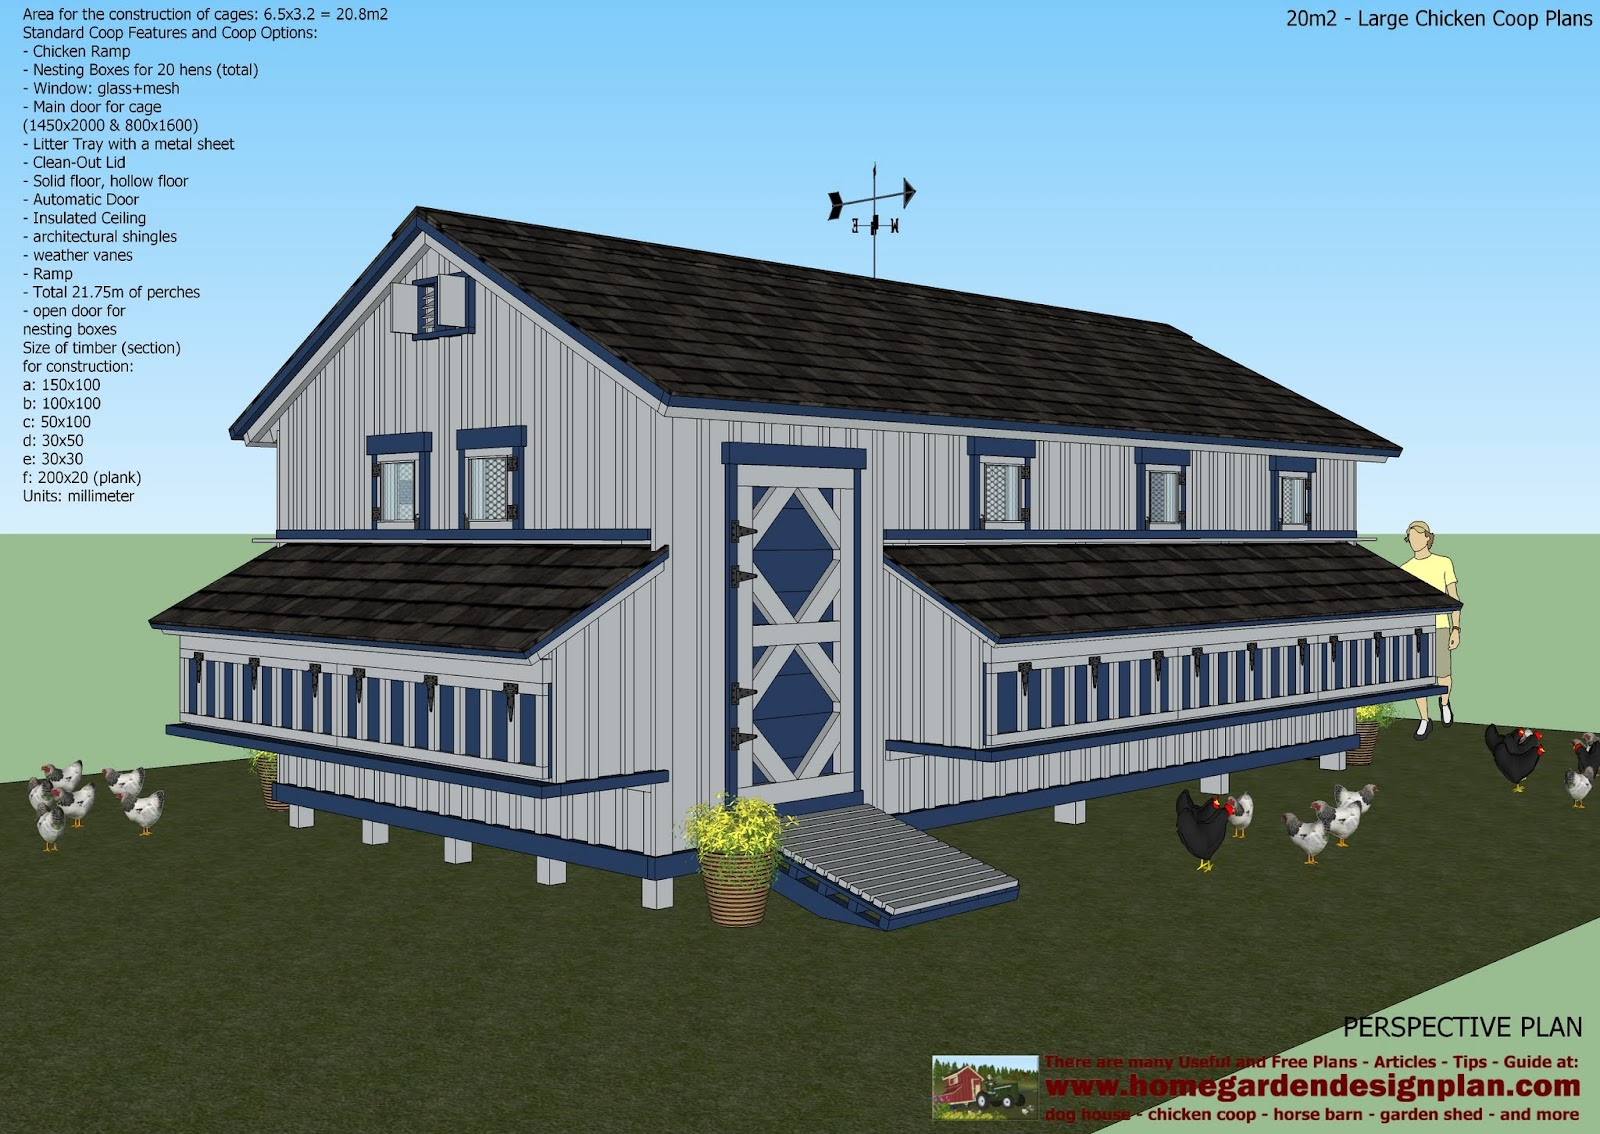 Home garden plans l310 large chicken coop plans chicken coop design how to build a for Hen house design plans